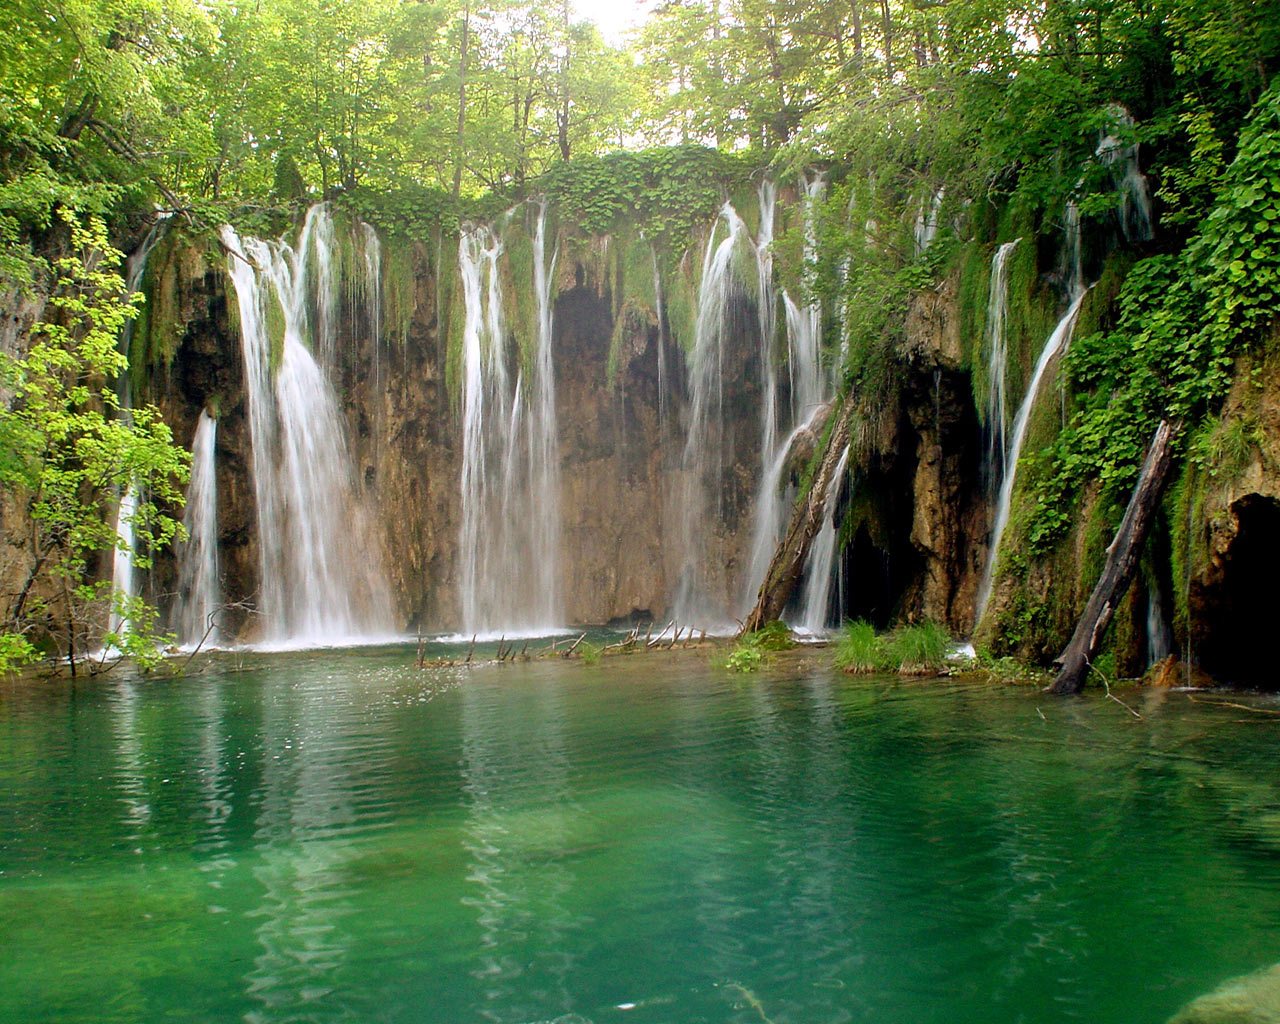 water falls nature waterfalls natural fall spring waterfall background desktop places beauty tropical valley park animated wallpapers pakistan naran kaghan